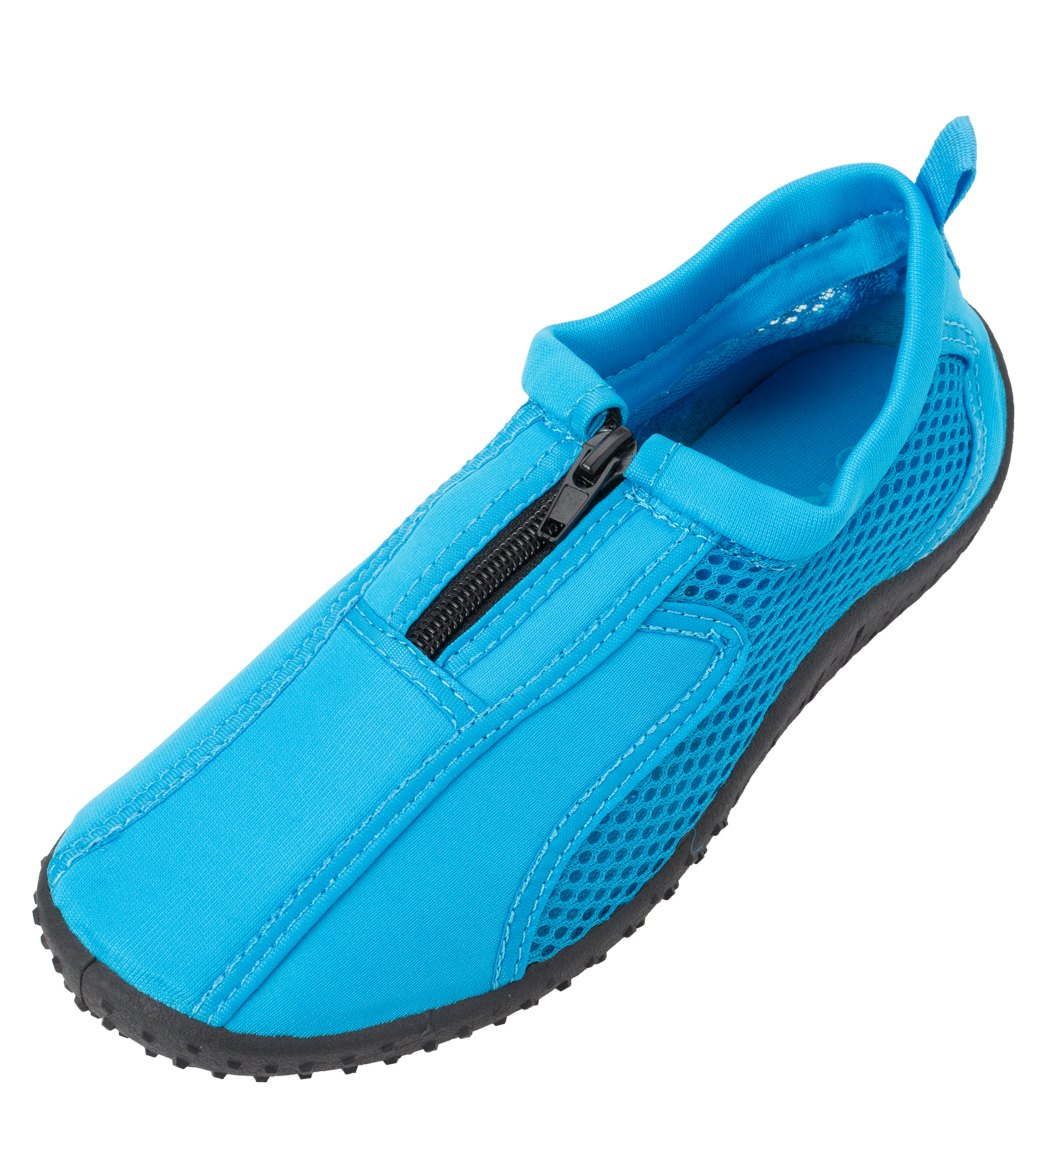 Rockin Footwear Kids' Aqua Neon Zipper Water Shoes at SwimOutlet.com